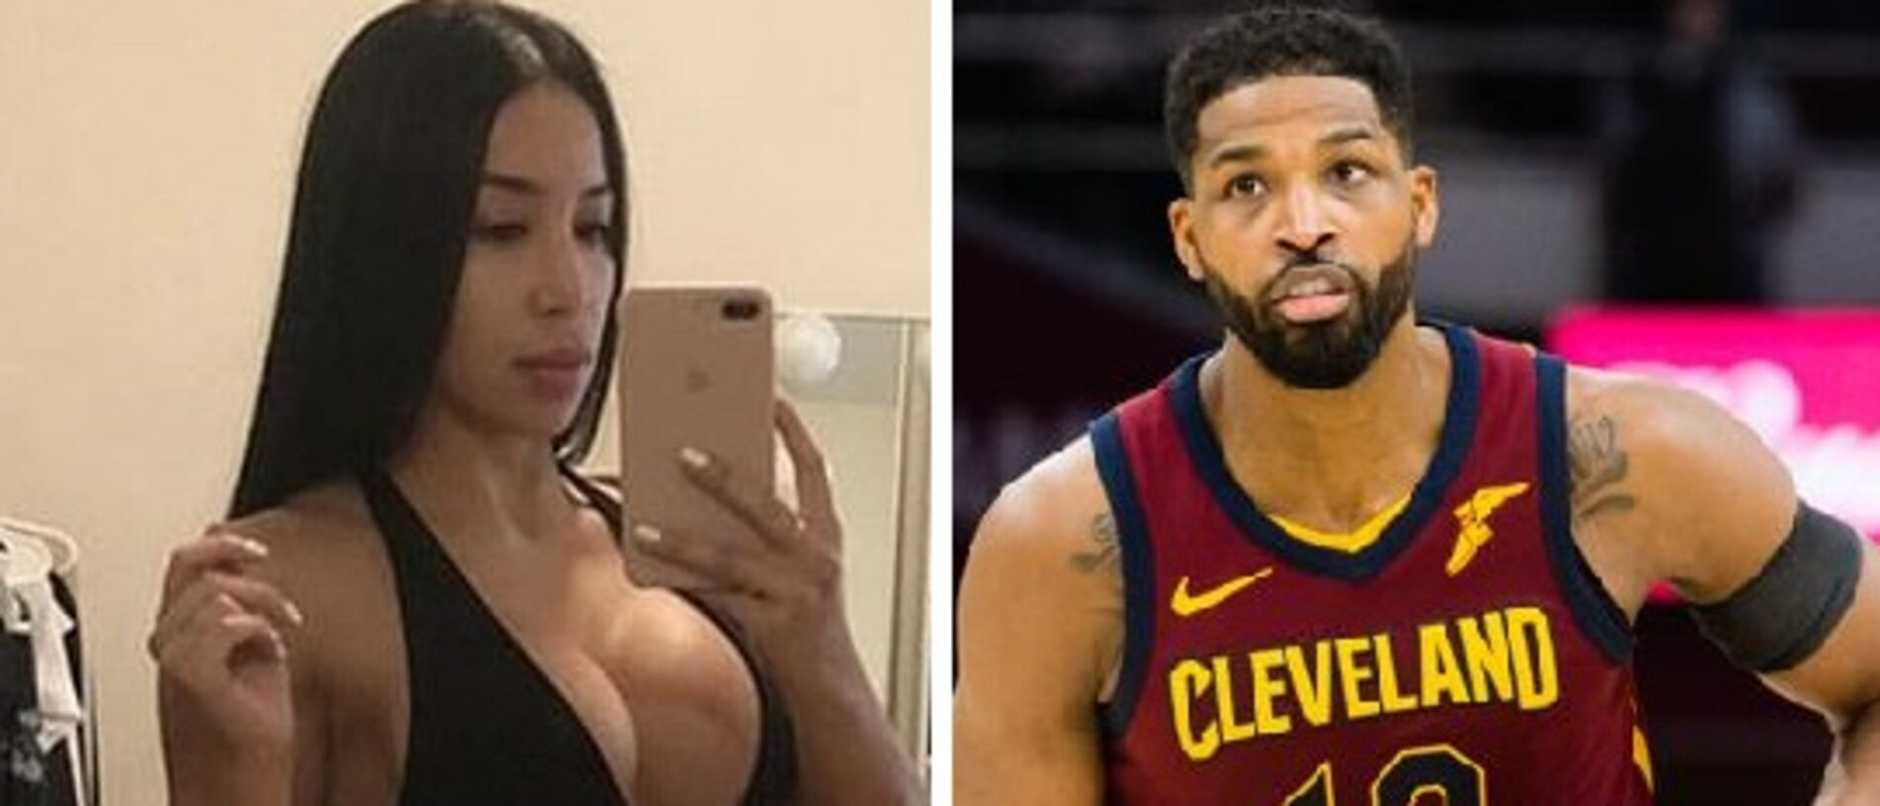 Former Khloe Kardashian squeeze Tristan Thompson has taken a swipe at his ex in a defamation lawsuit filed Tuesday.